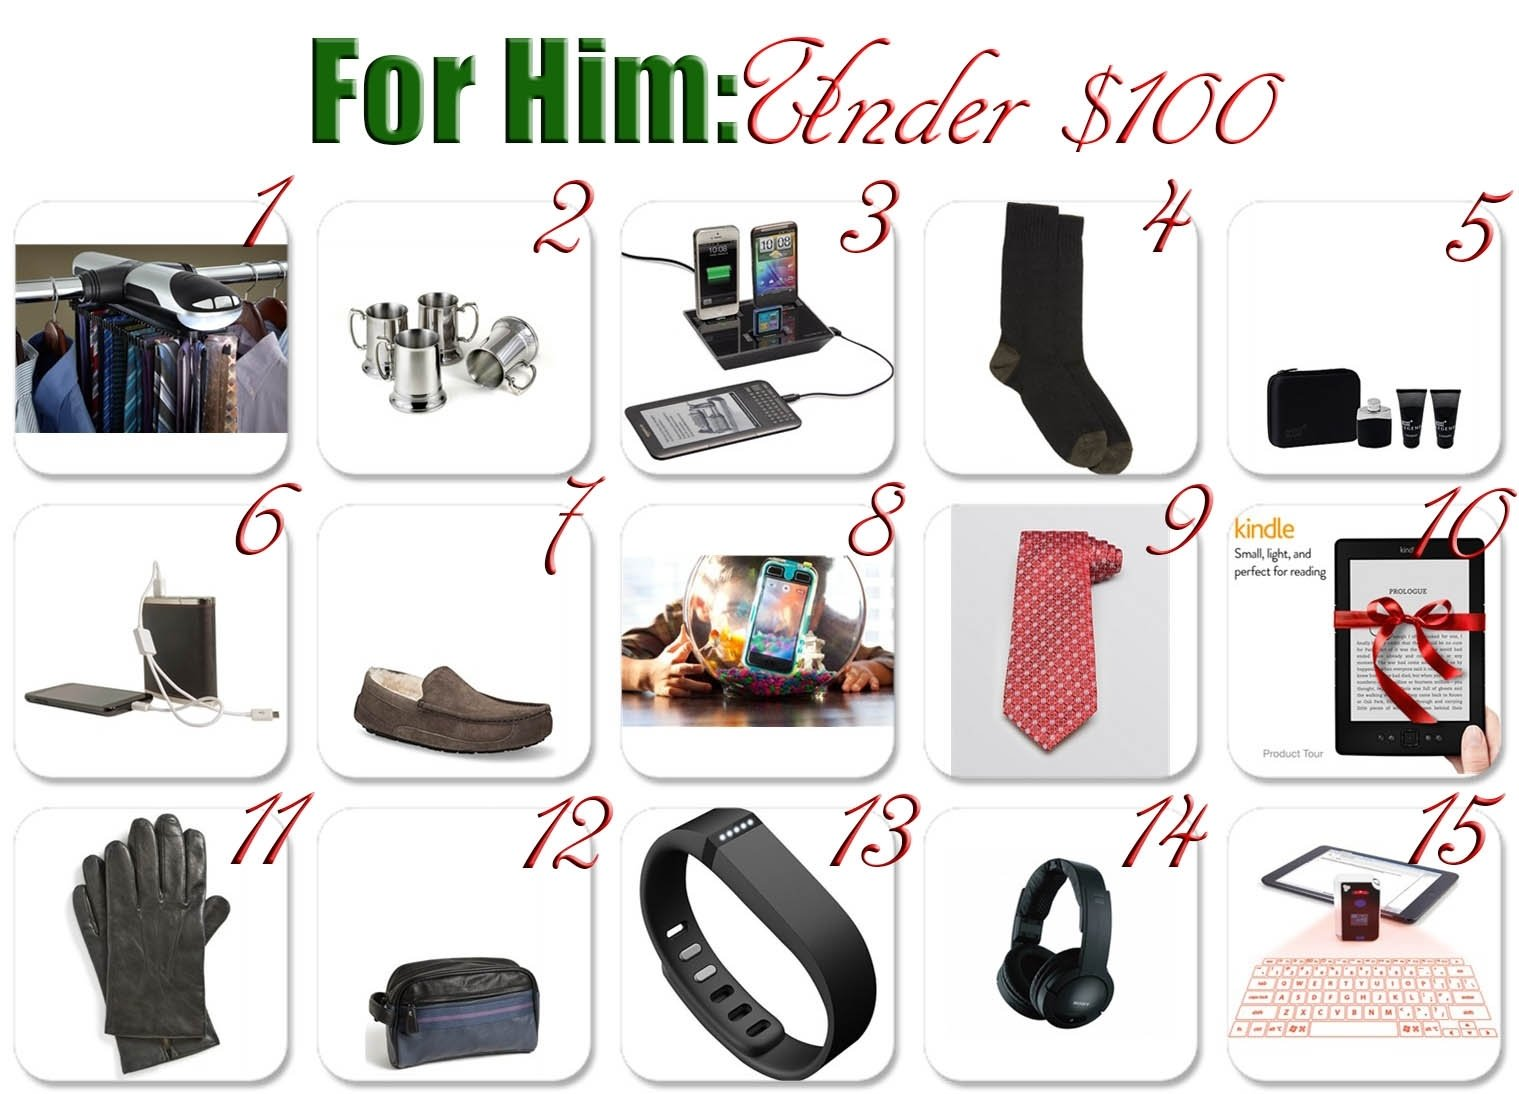 gifts design ideas: little surprise gifts for men small inexpensive